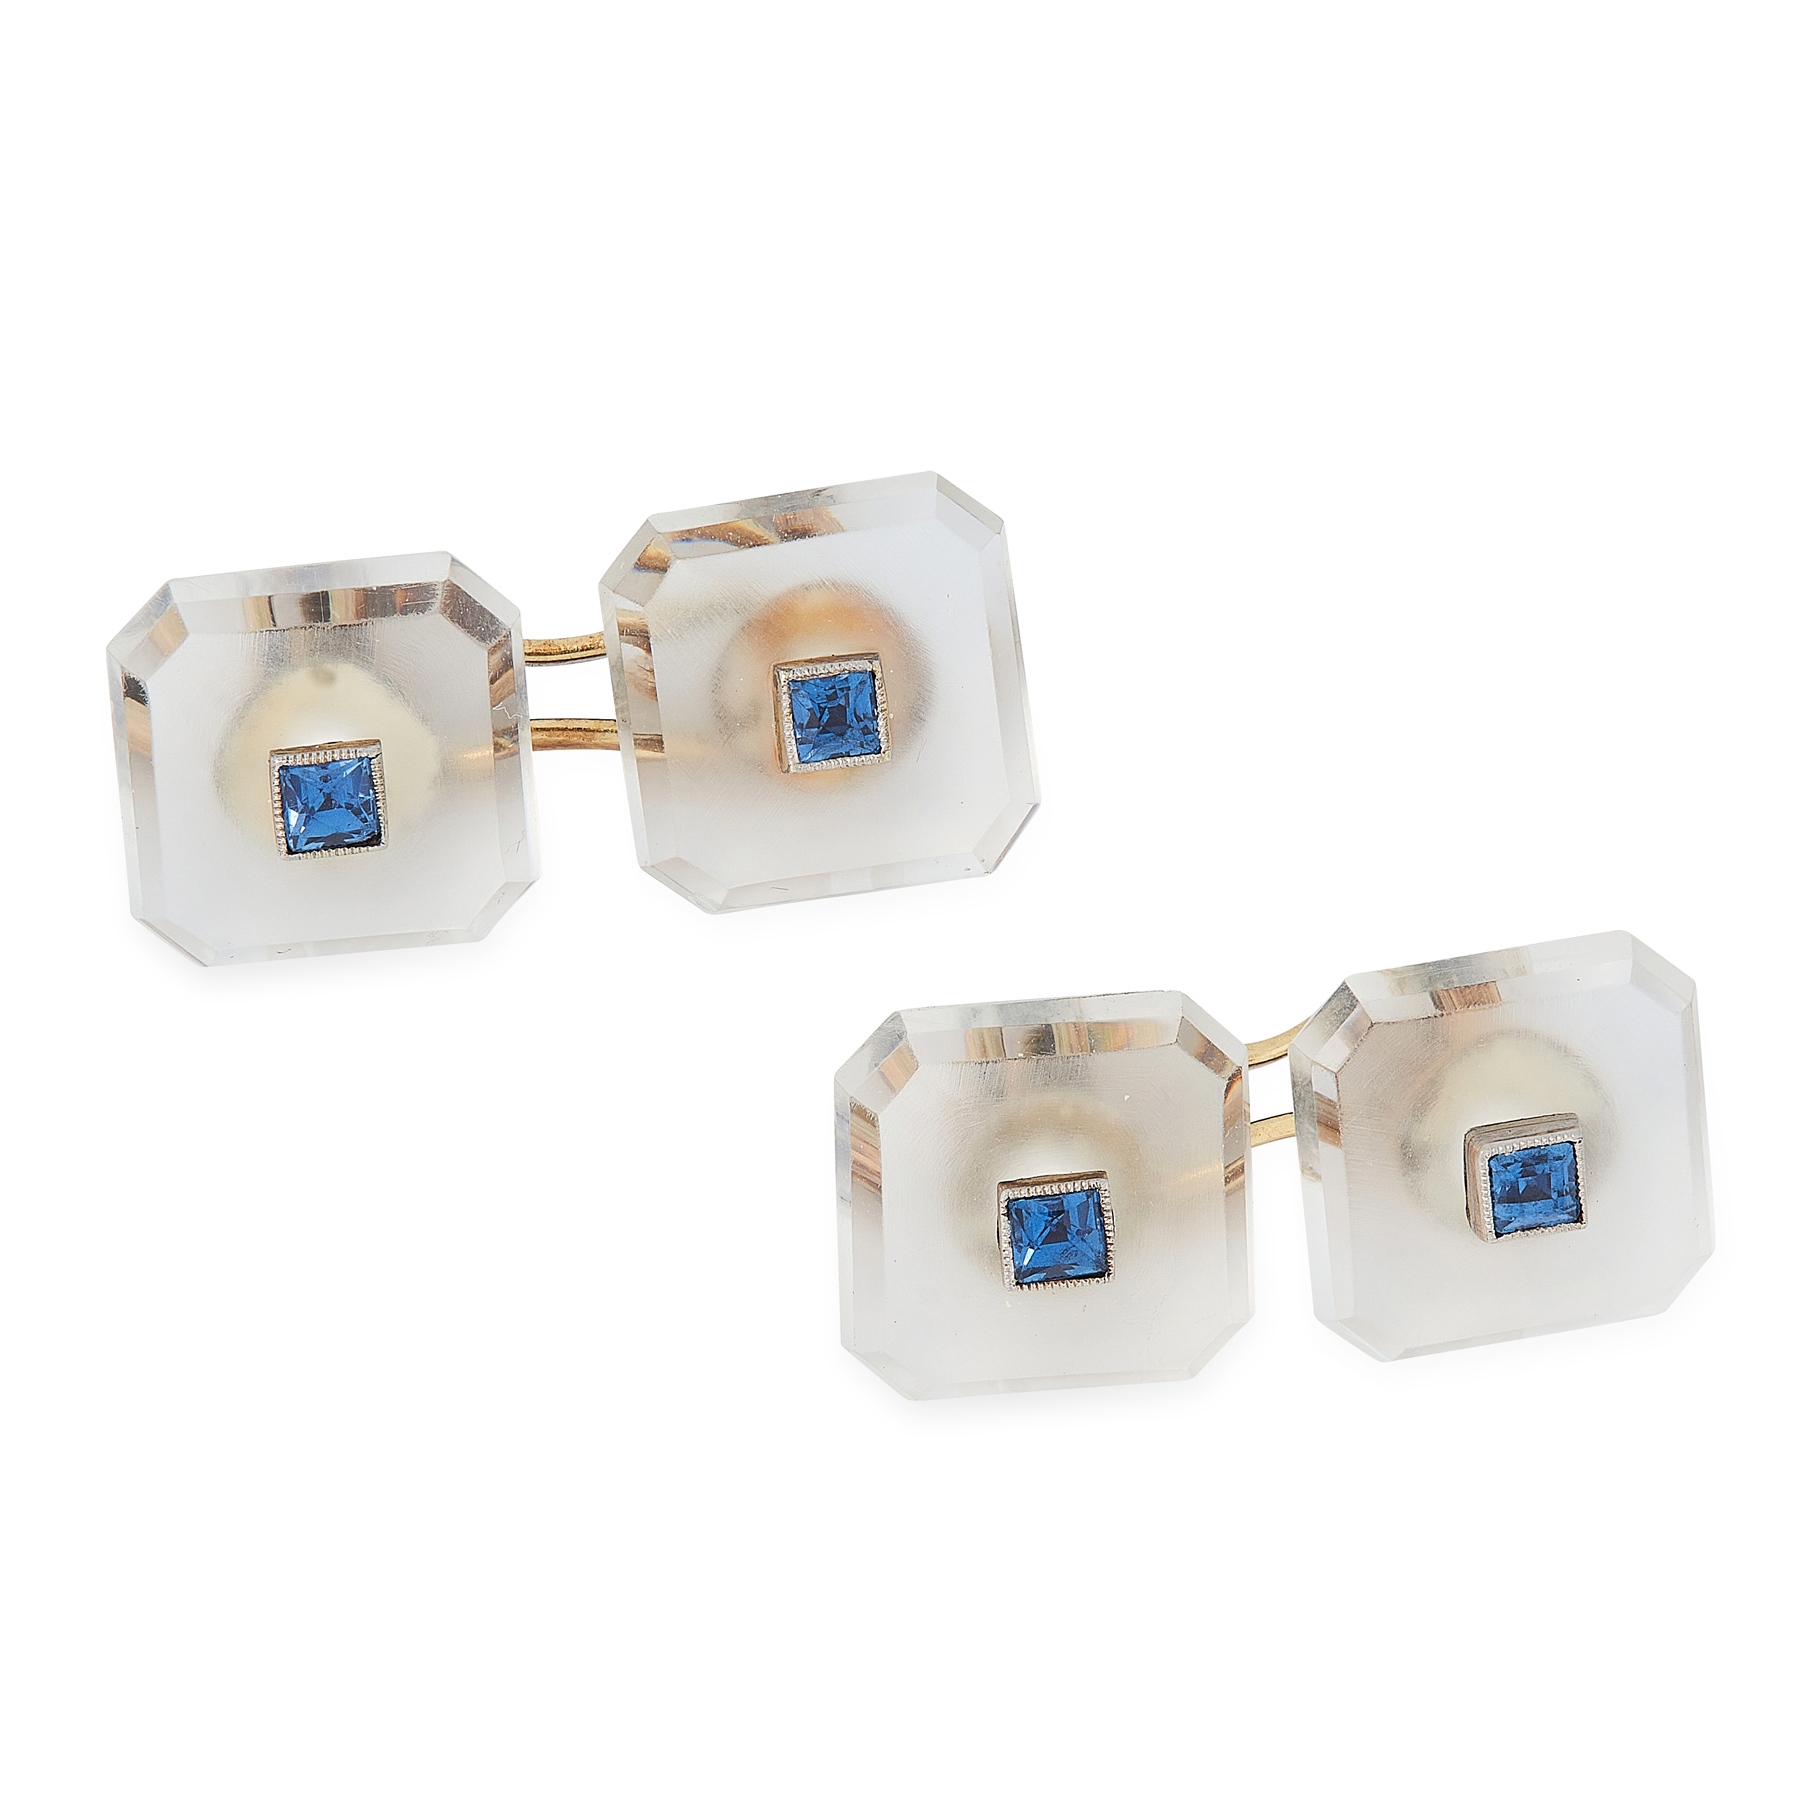 A PAIR OF SAPPHIRE AND ROCK CRYSTAL CUFFLINKS, CIRCA 1930 in yellow gold, each formed of two